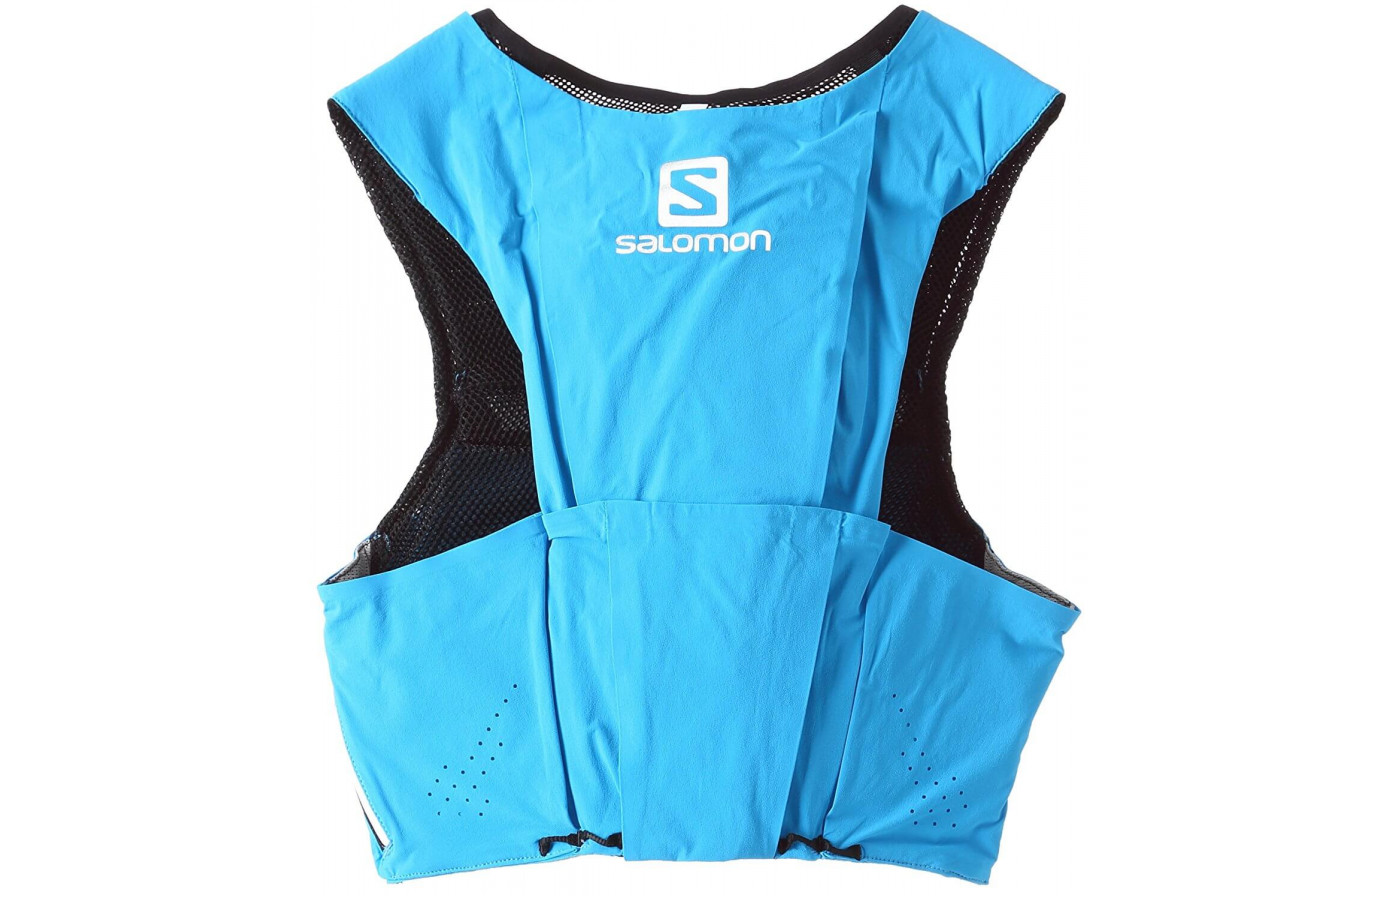 The Salomon S-Lab Sense Ultra 8 Set features a combination of zippered and stretch pockets